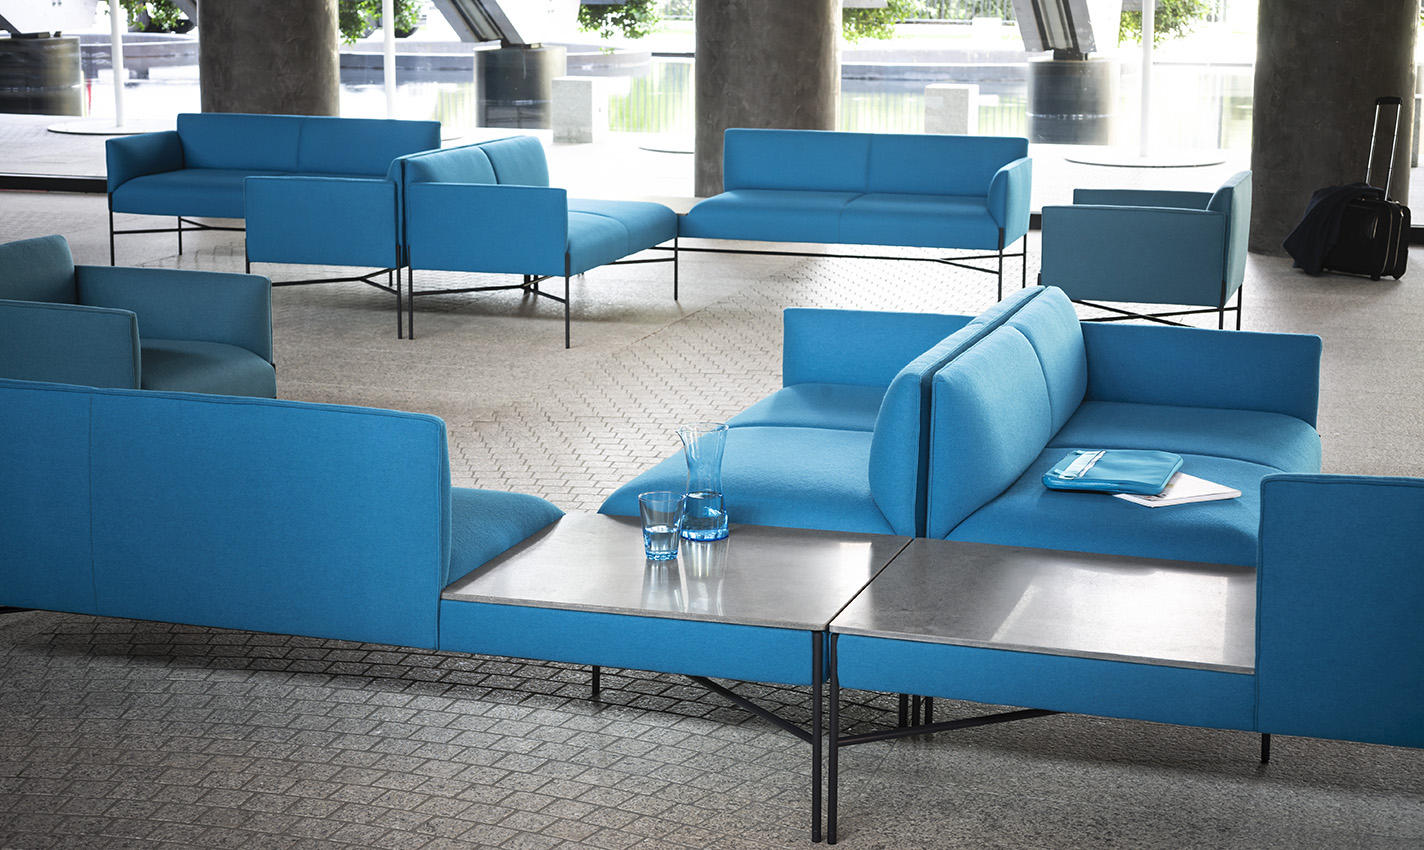 chill out high modular seating systems from tacchini italia architonic. Black Bedroom Furniture Sets. Home Design Ideas